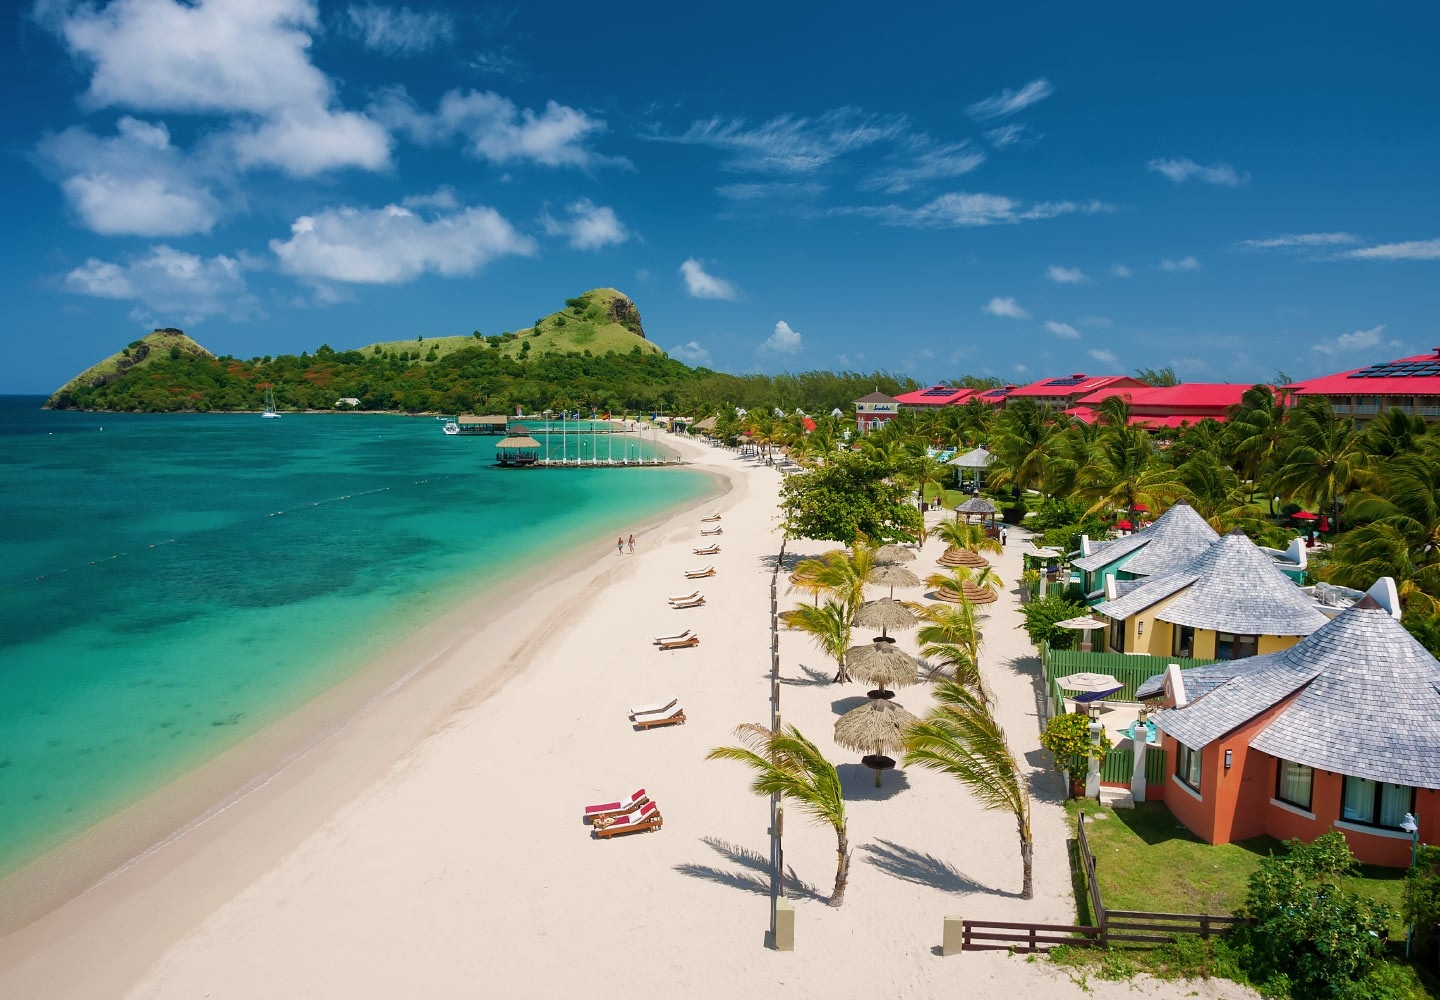 Sandals Holidays Deals All Inclusive Resorts & Holiday-All The Holidays In Grenada 2020